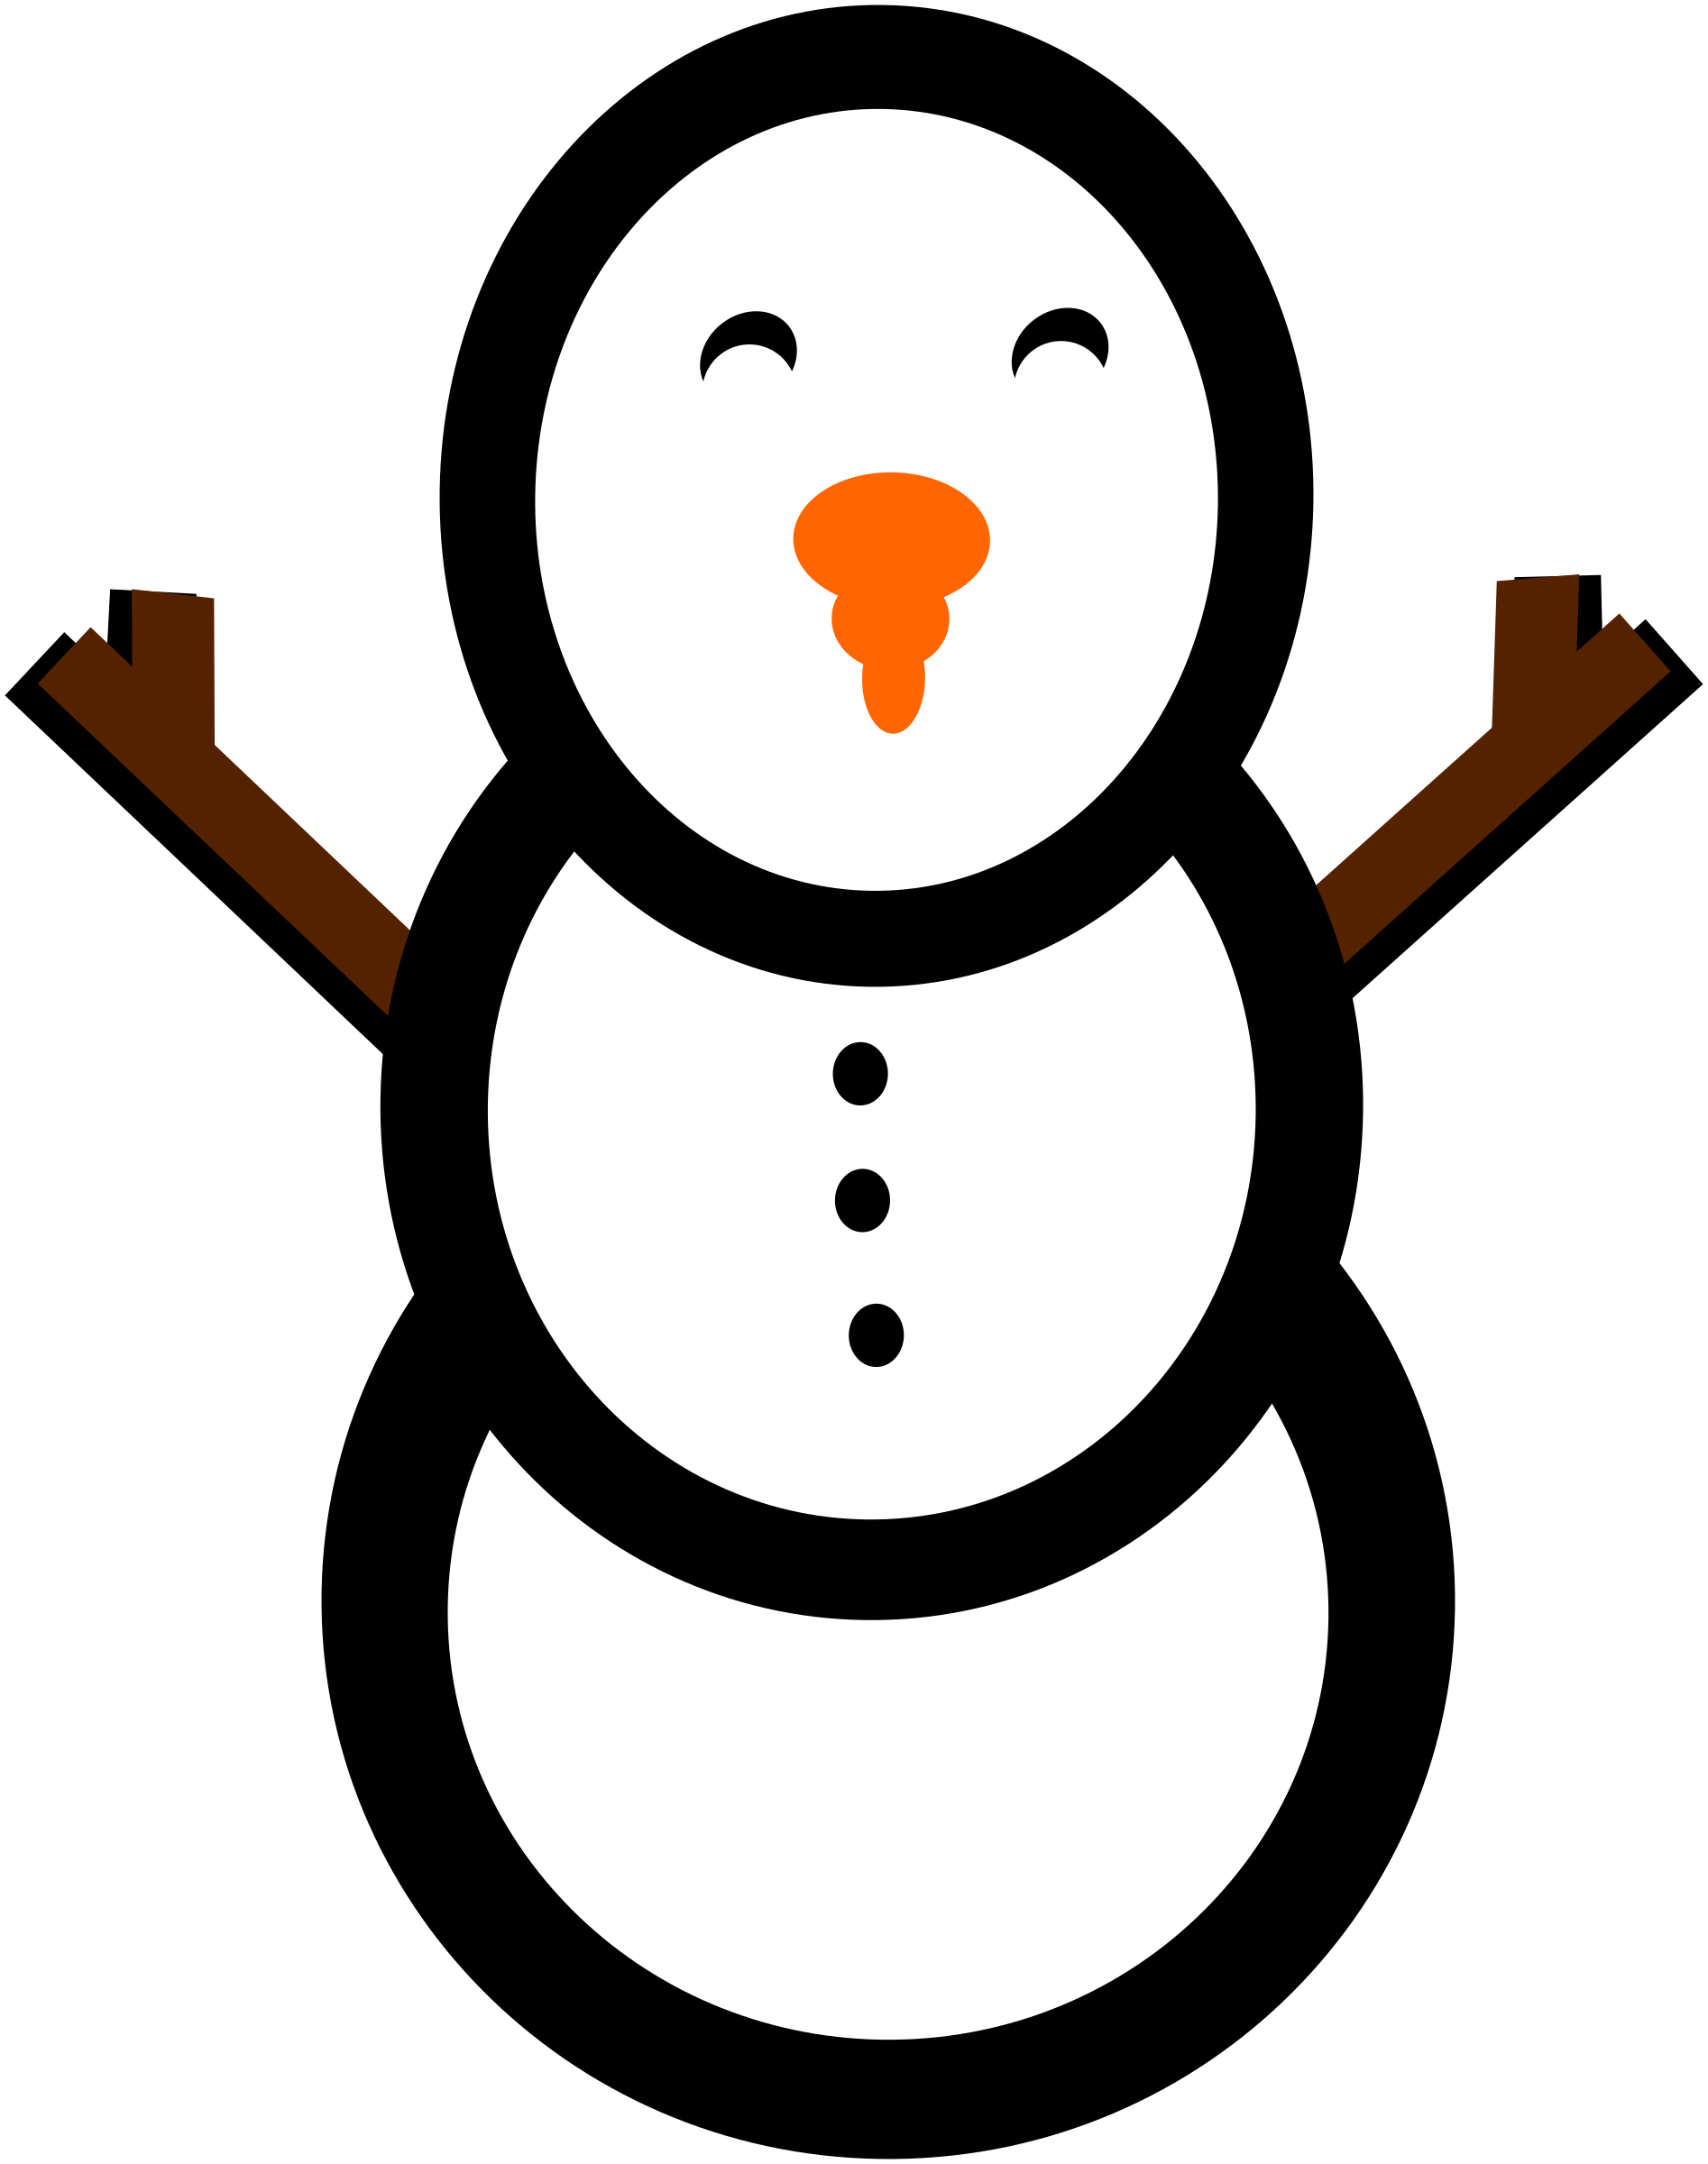 snowman by PeterBrough